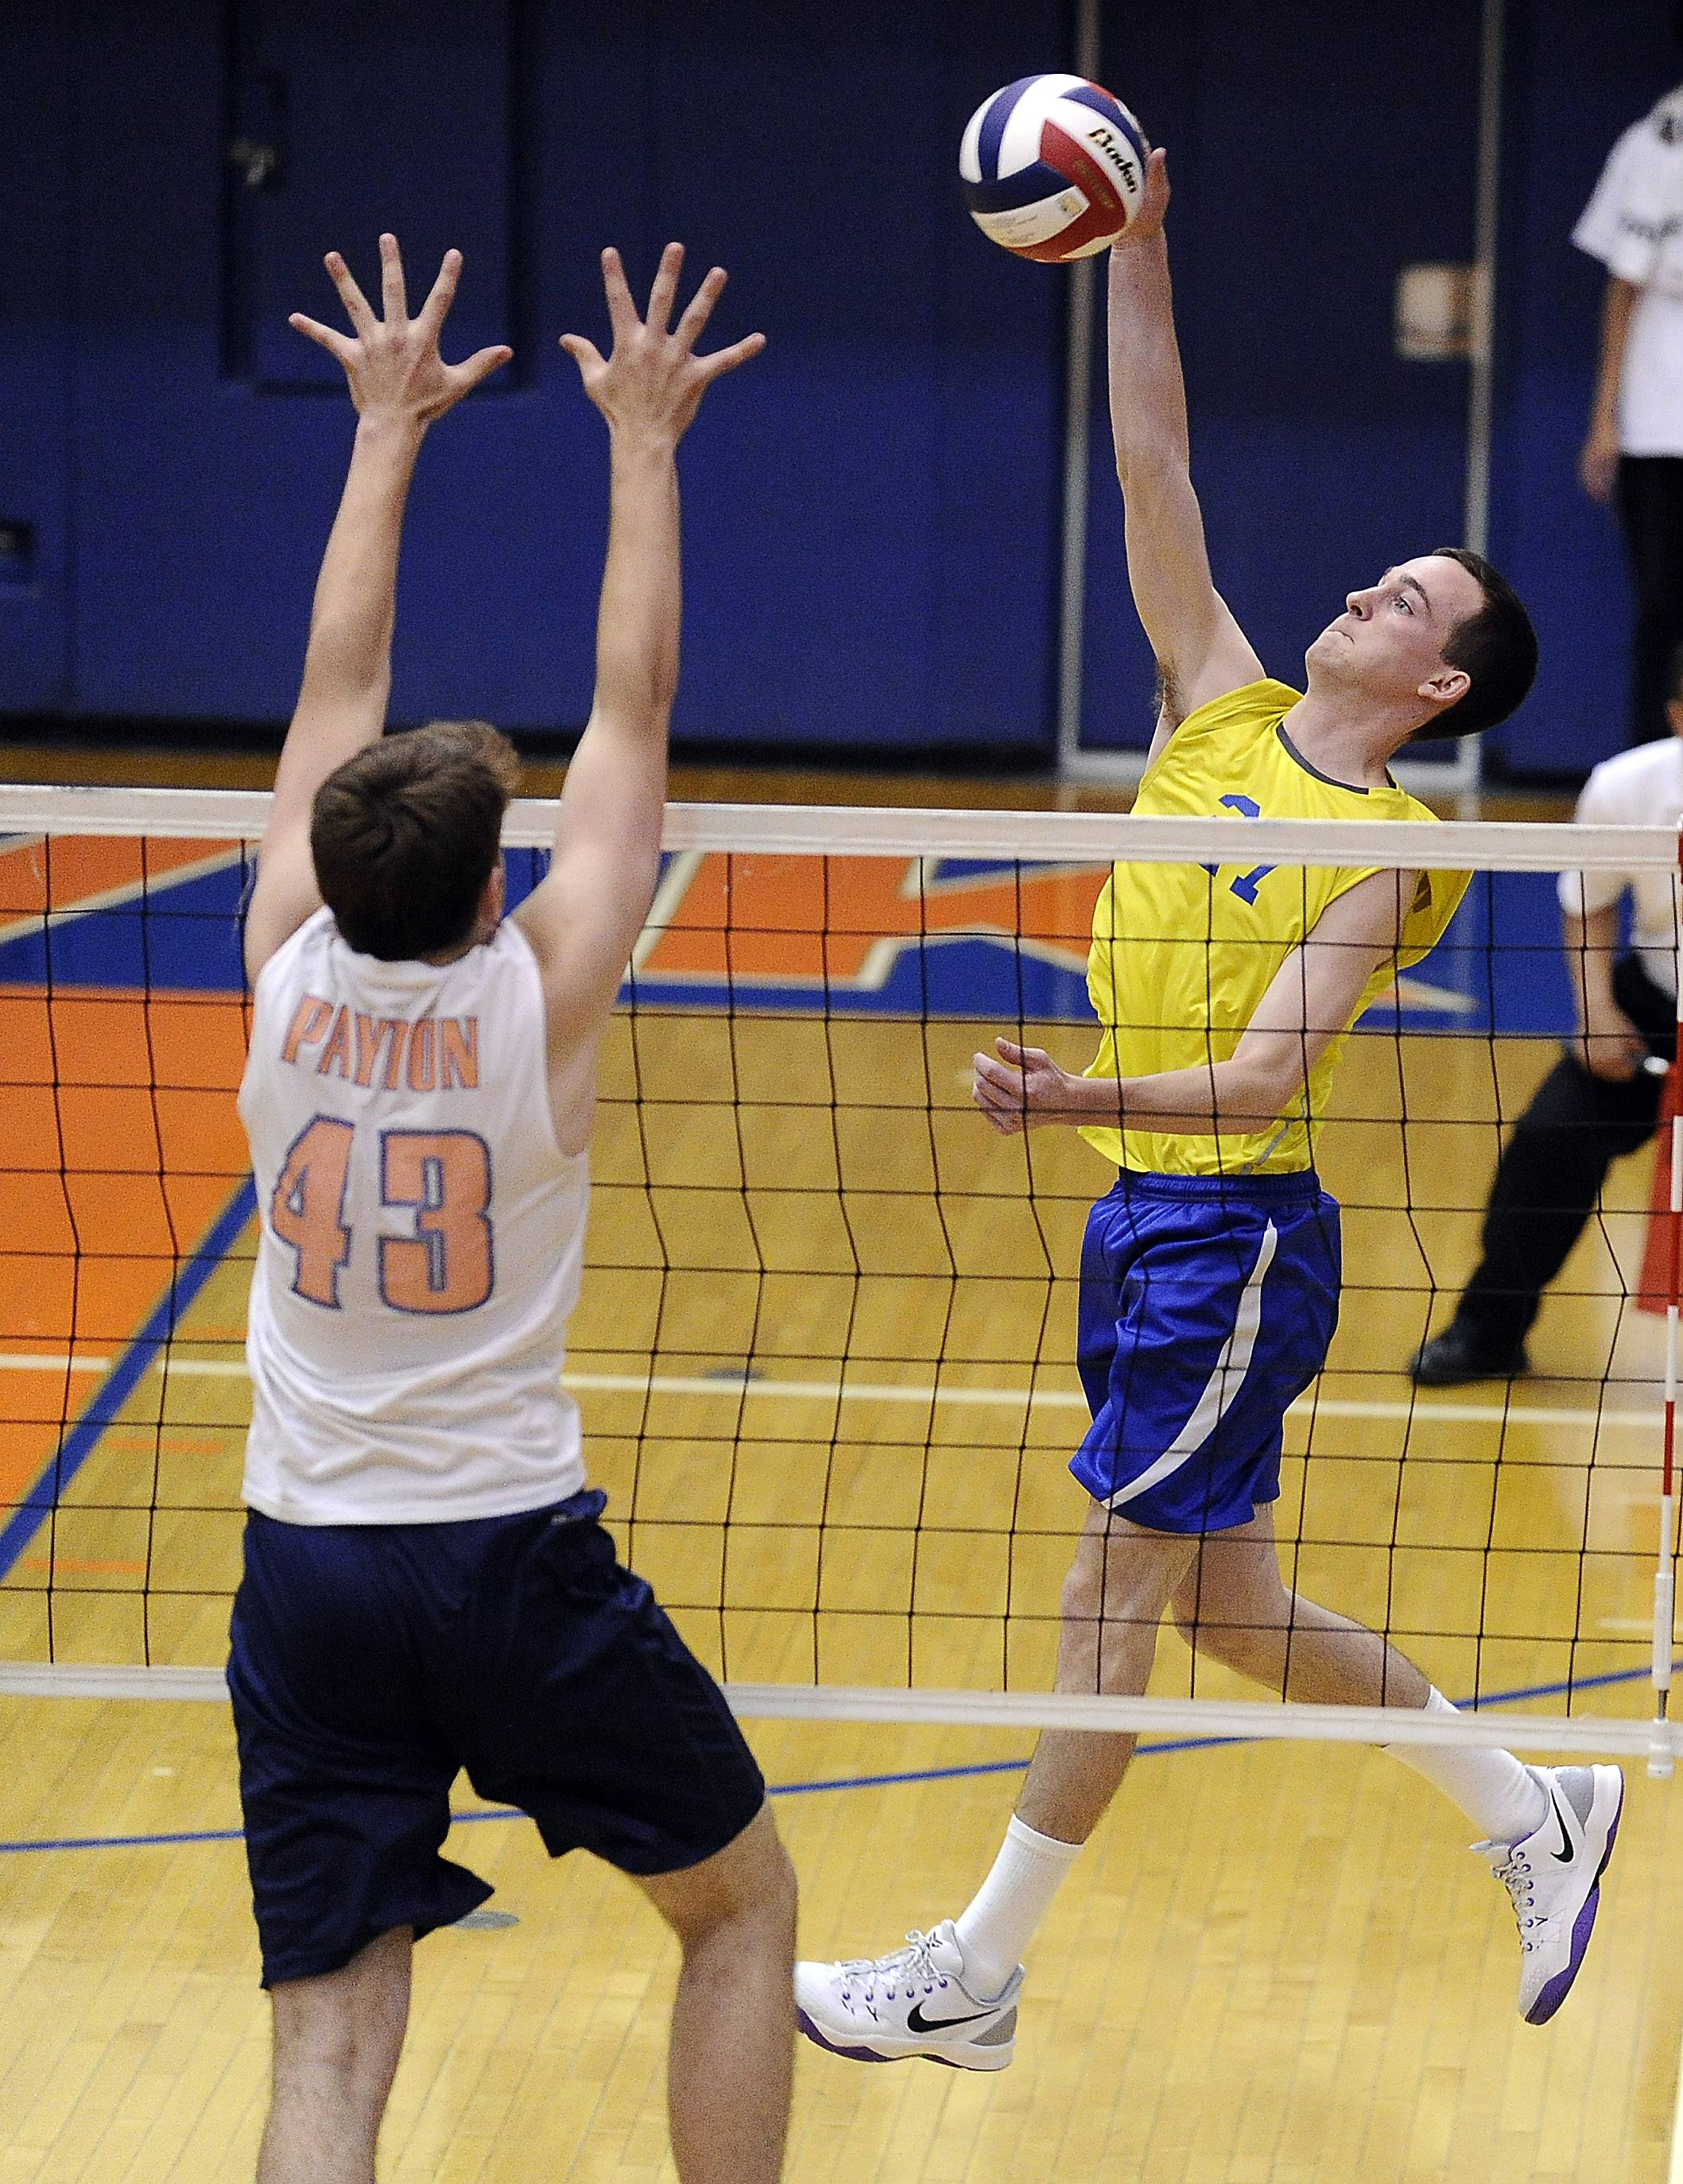 Warren's Bryant Holland slams one back to Payton's Max Donovan in set one of their boys volleyball state quarterfinal matchup at Hoffman Estates High School on Friday.